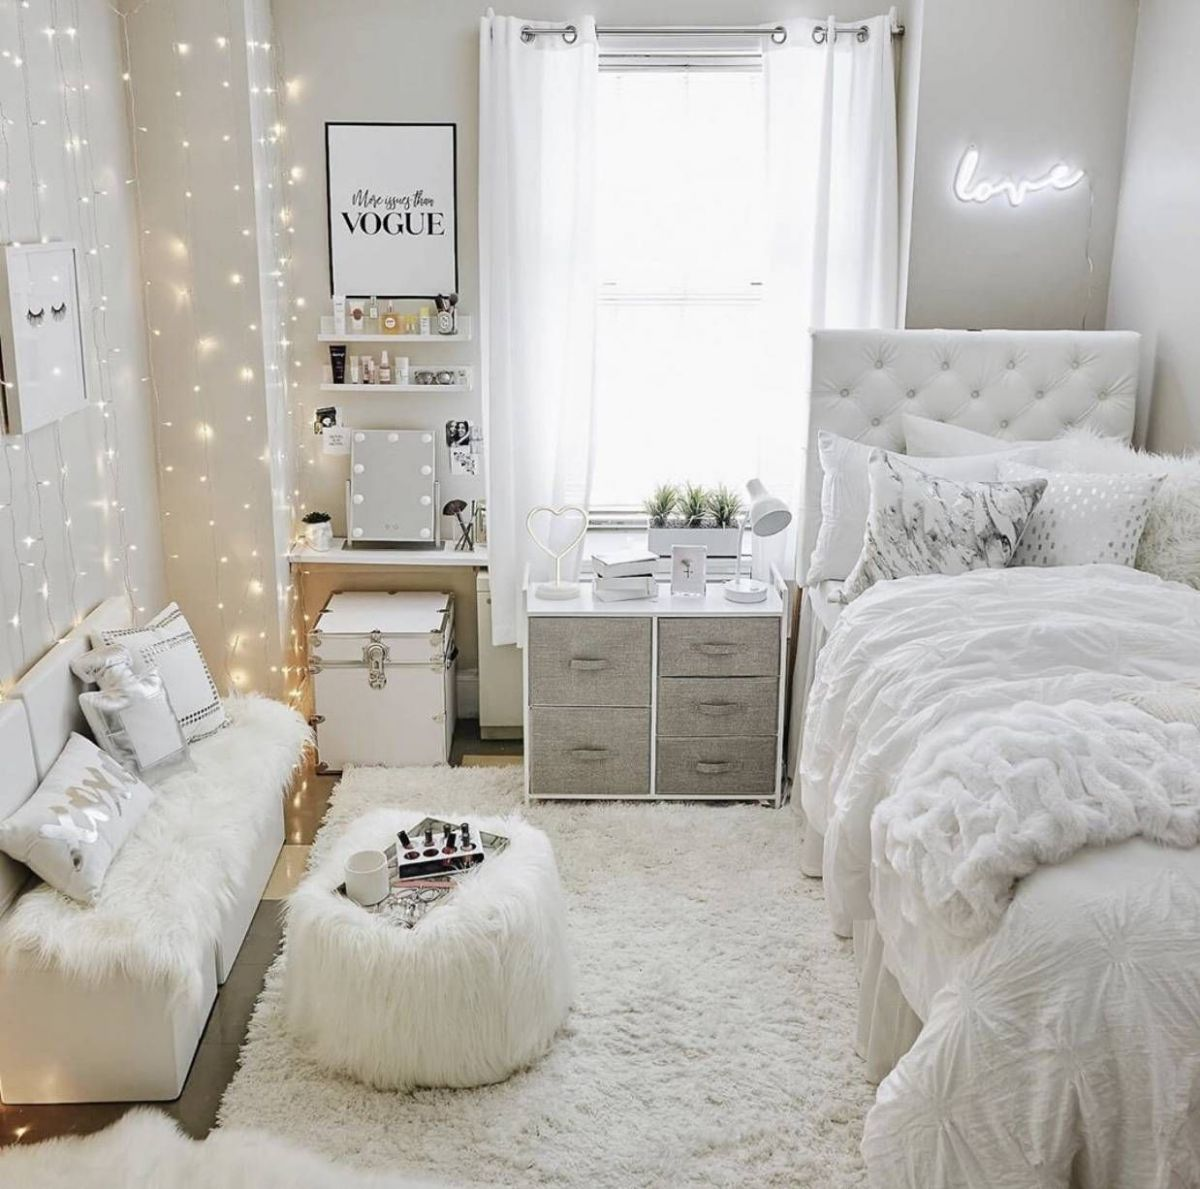 VSCO Room Ideas: How to Create a Cute Vsco Room | College room ...